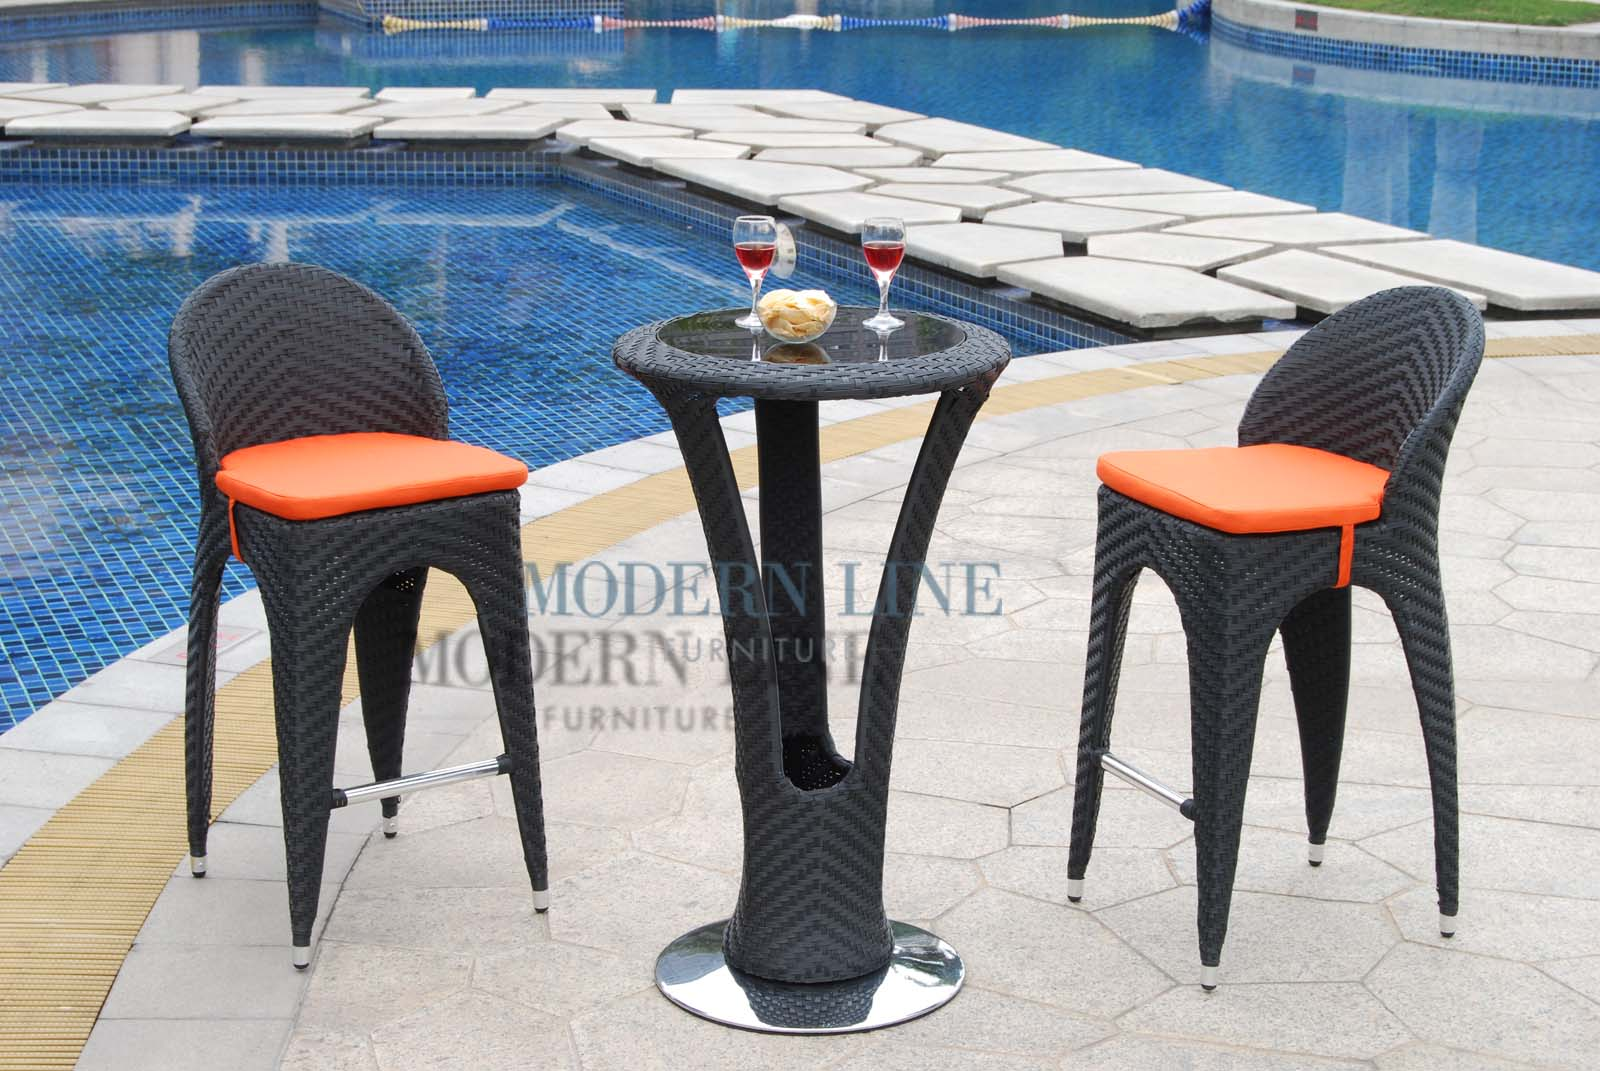 Modern Line Furniture   Commercial Furniture   Custom Made Furniture |  Outdoor Furniture | Outdoor Patio Dining | | Unique Modern Outdoor Patio  Bar Table ...